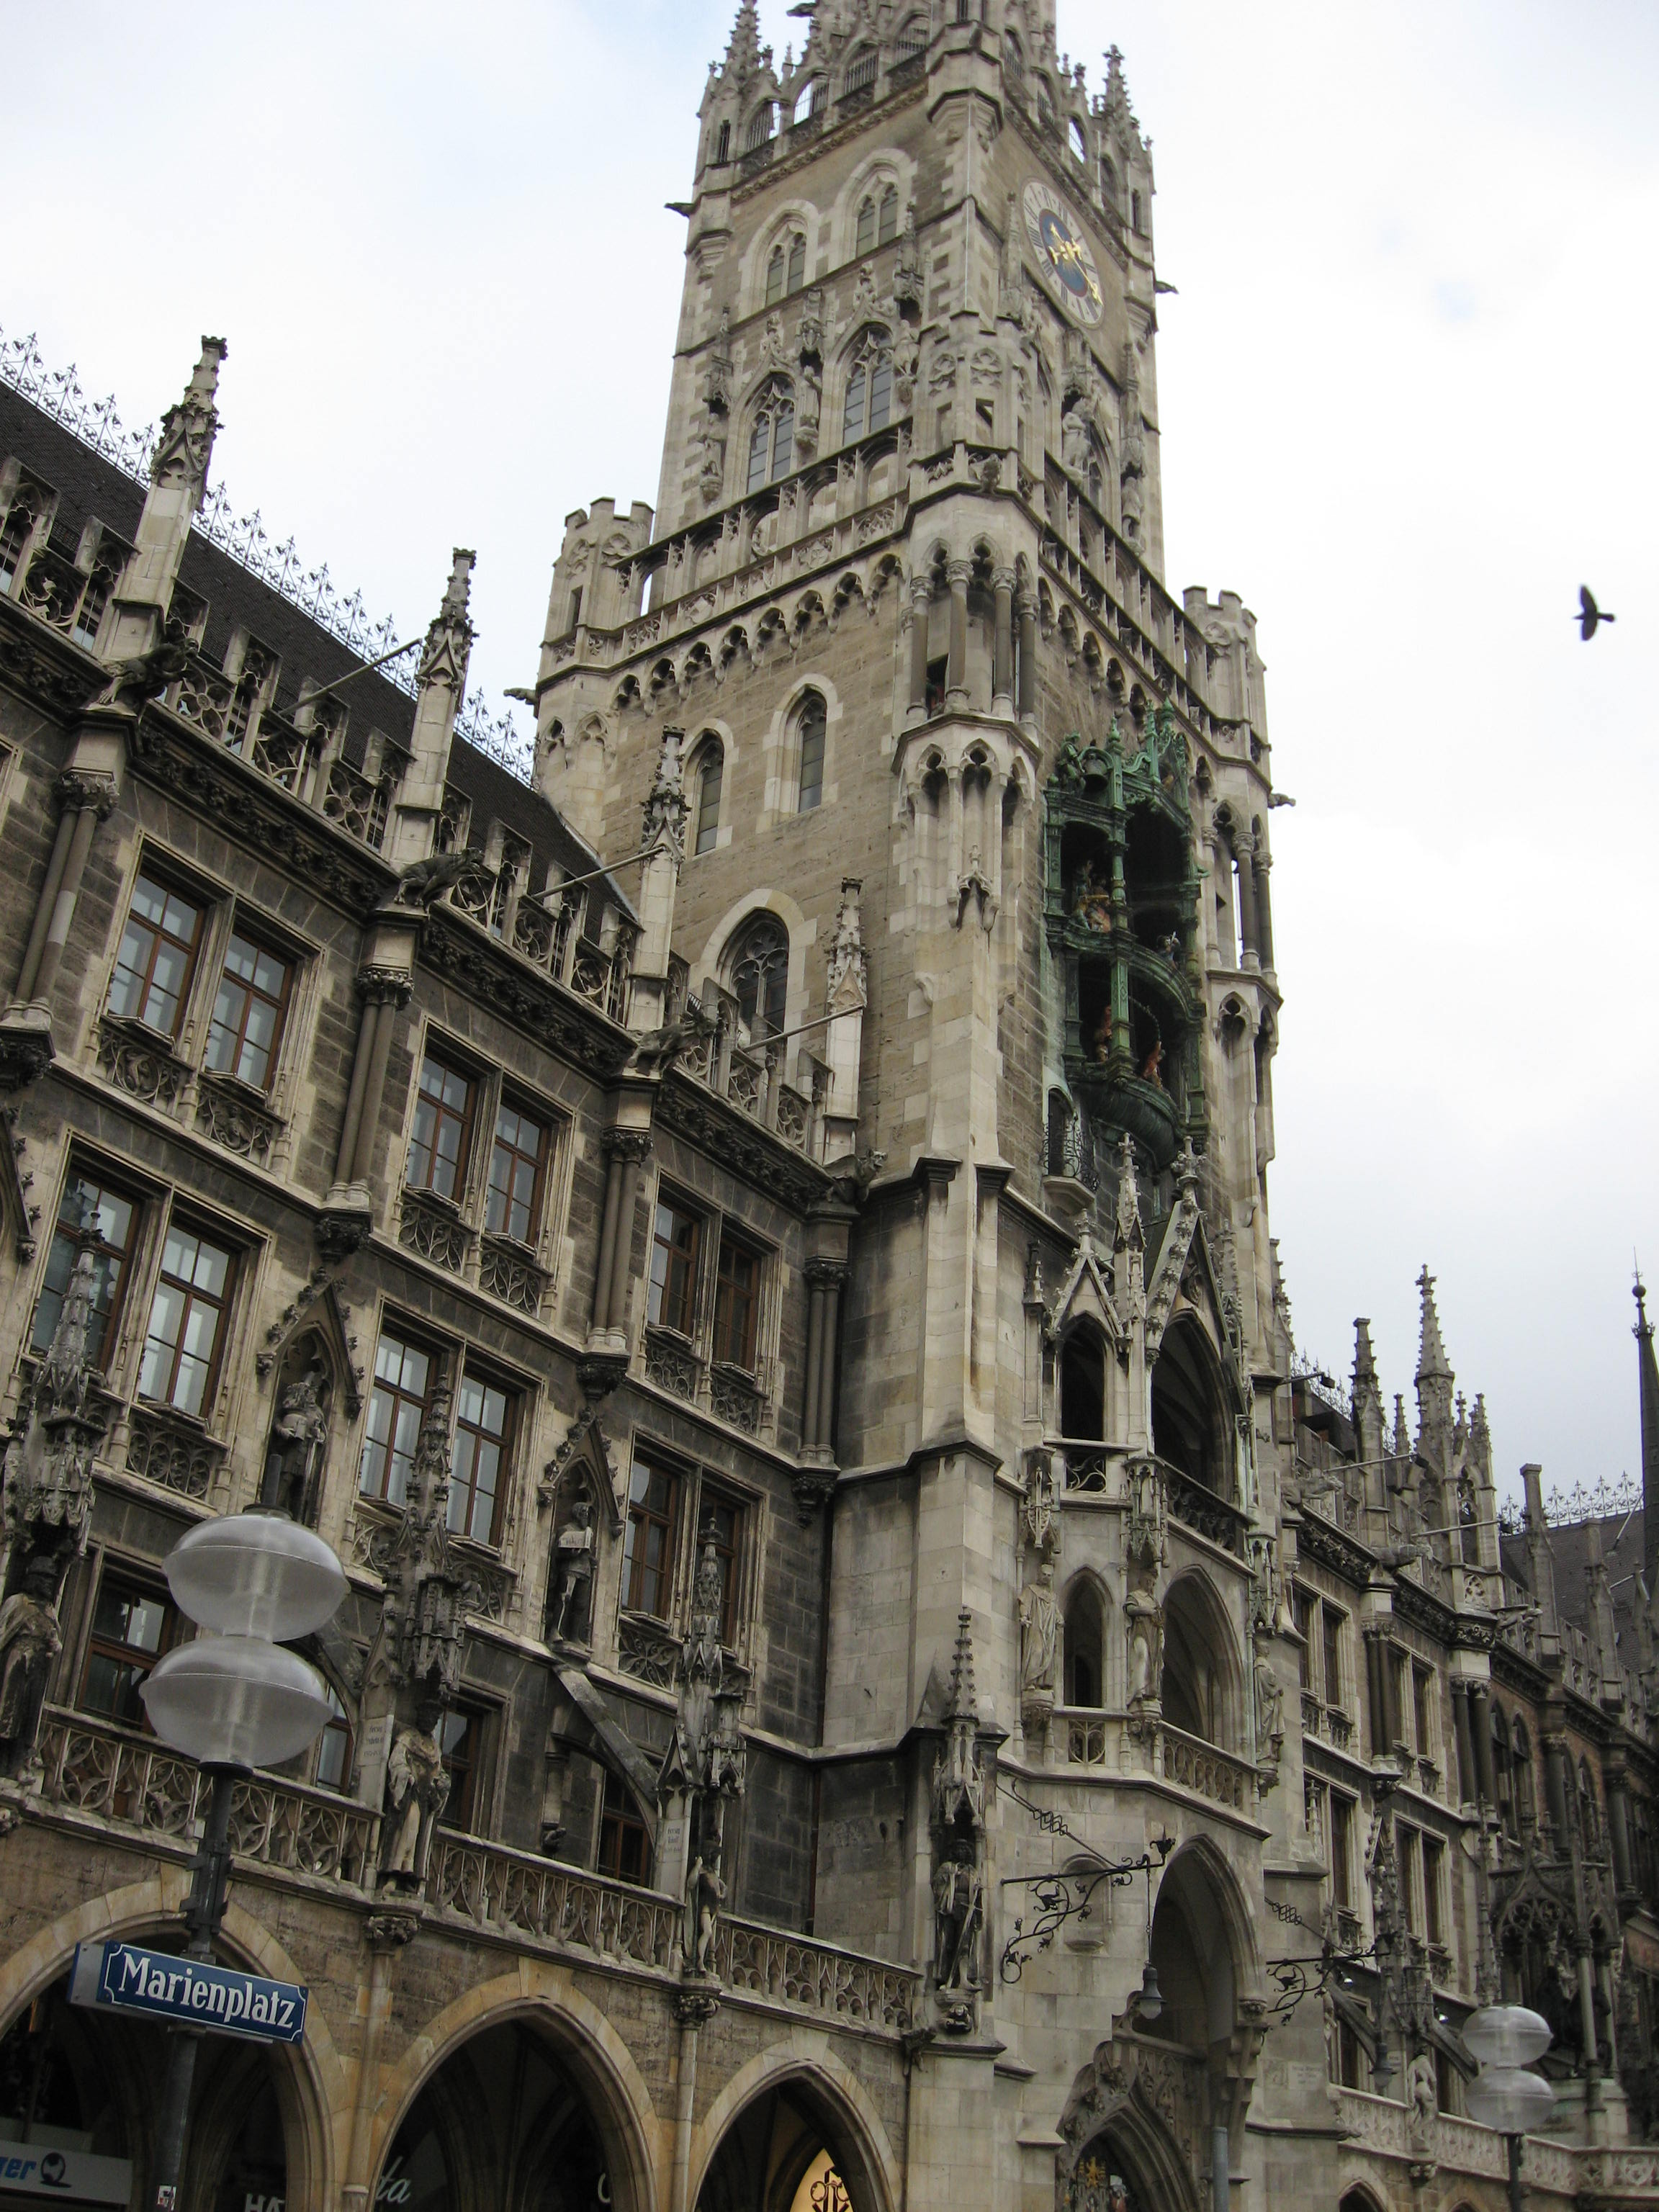 Marienplatz - Munich - Germany